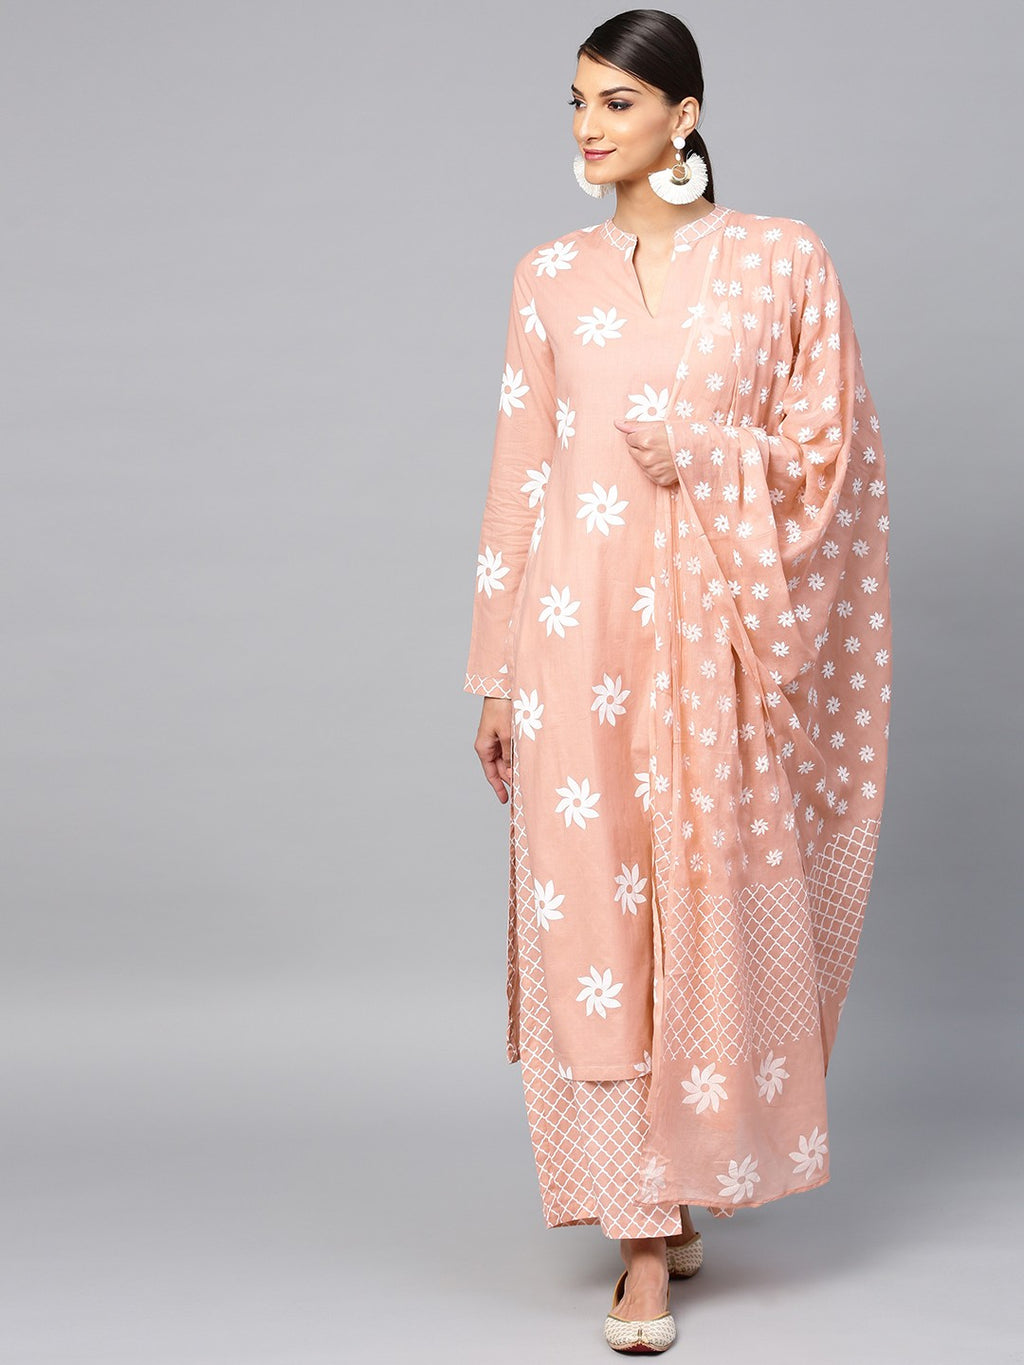 Peach Khari Printed Straight Kurta With Palazzo & Dupatta Set (Fully Stitched) | Znx4ever.com